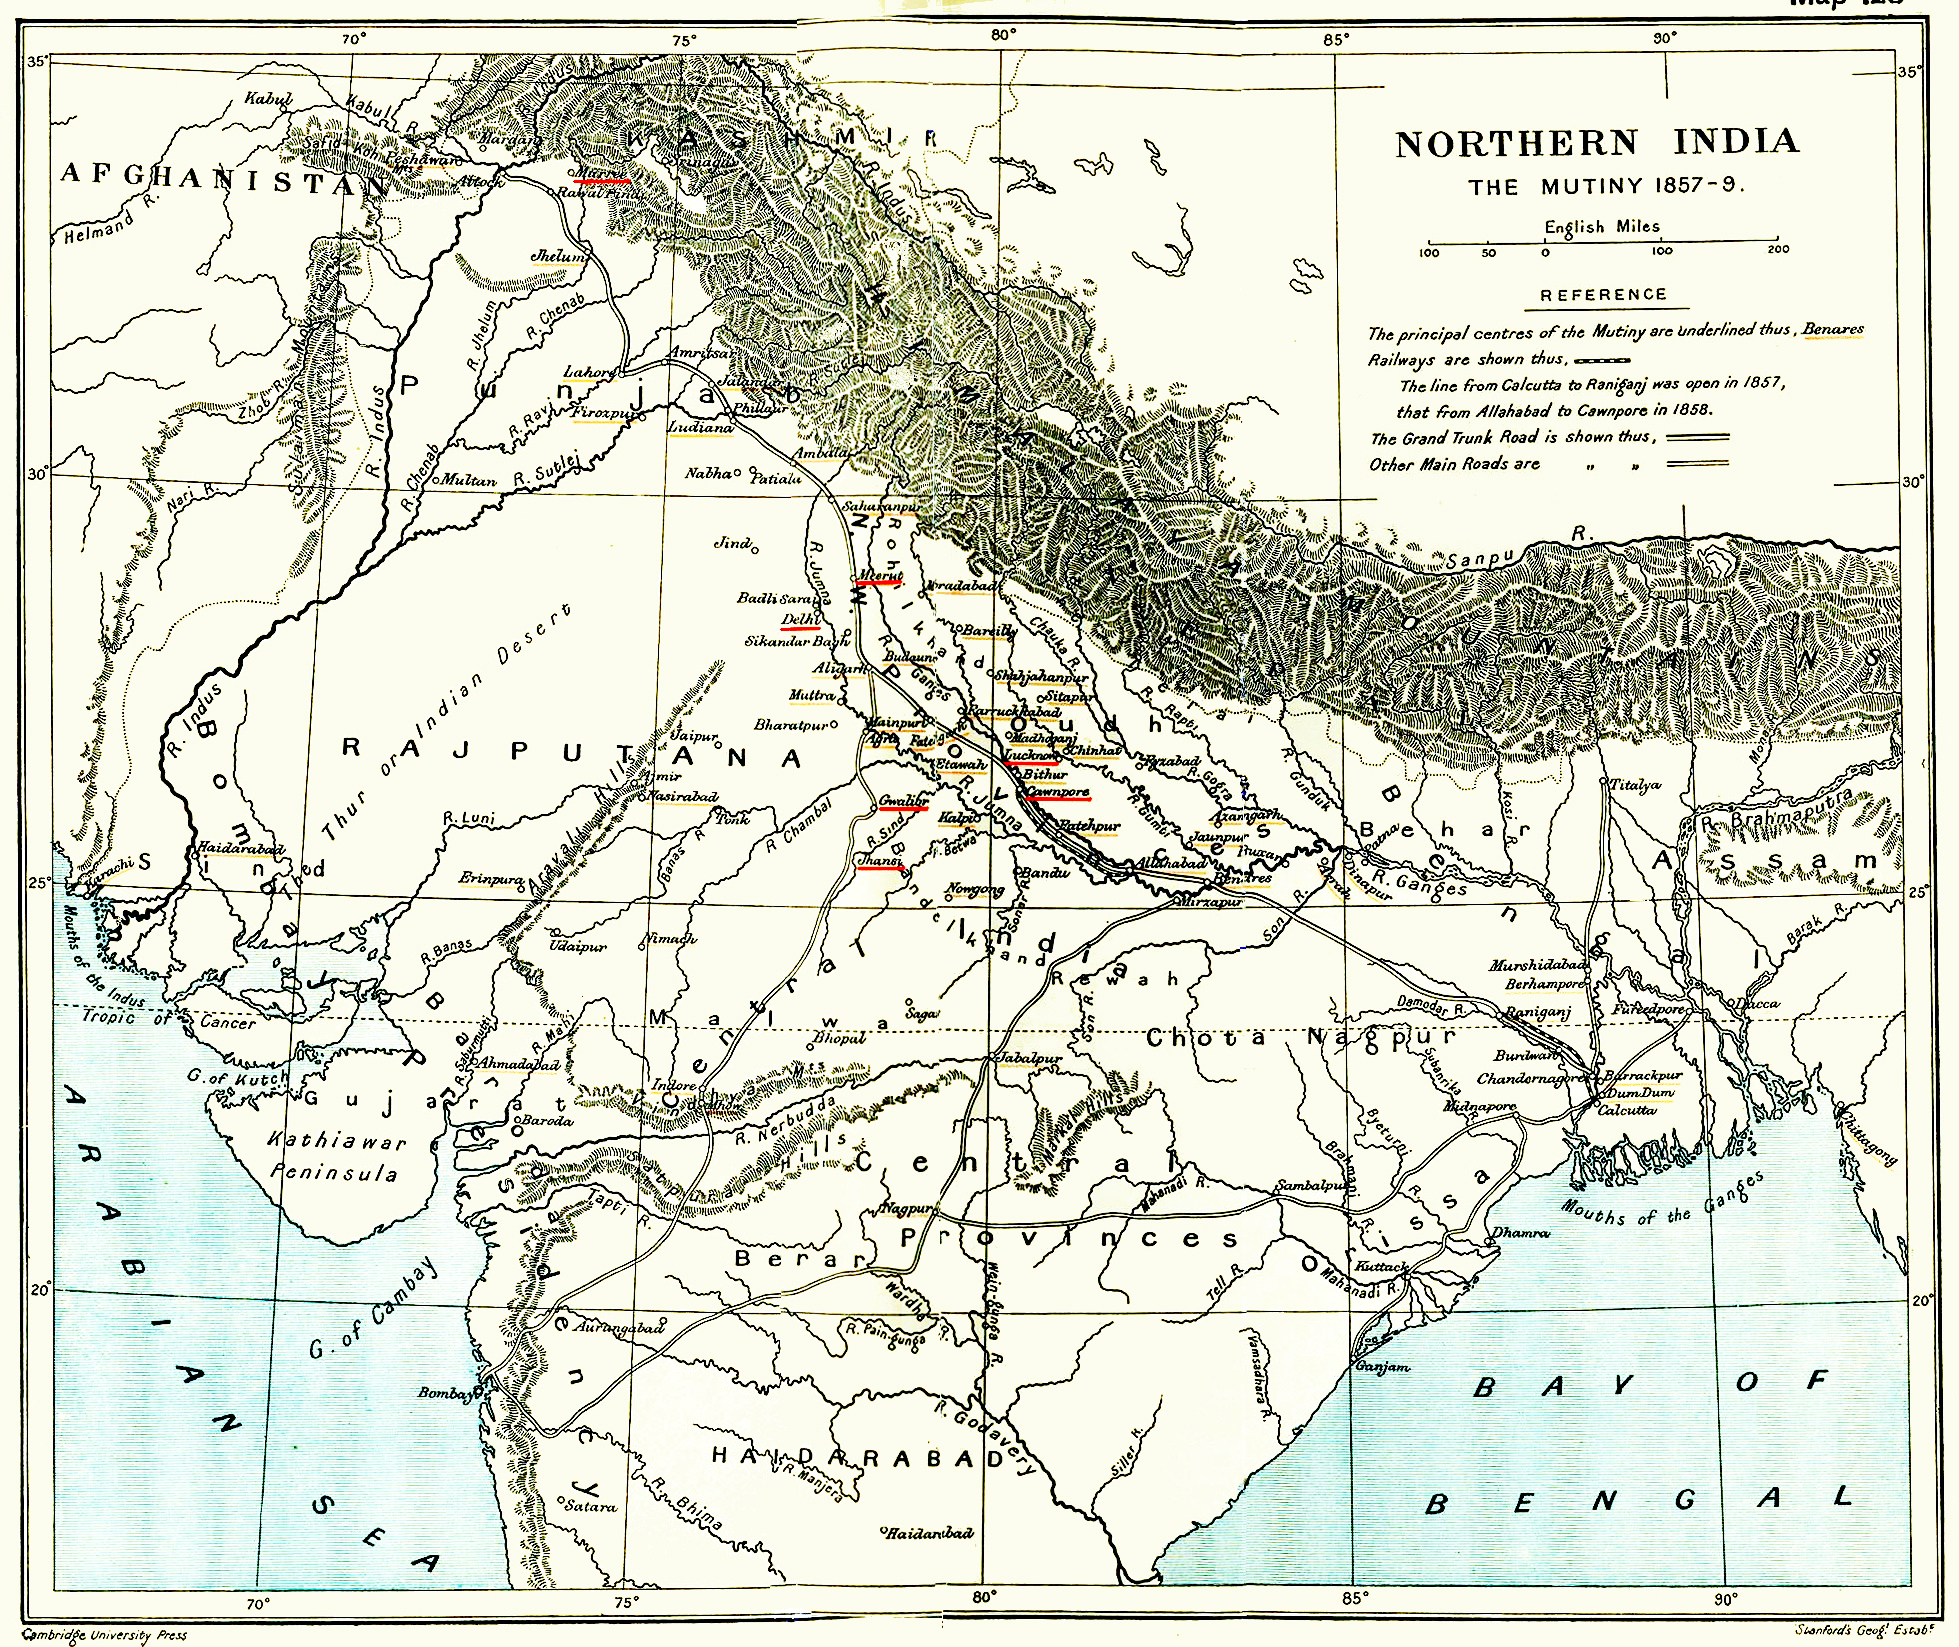 British colonization in india essay for kids